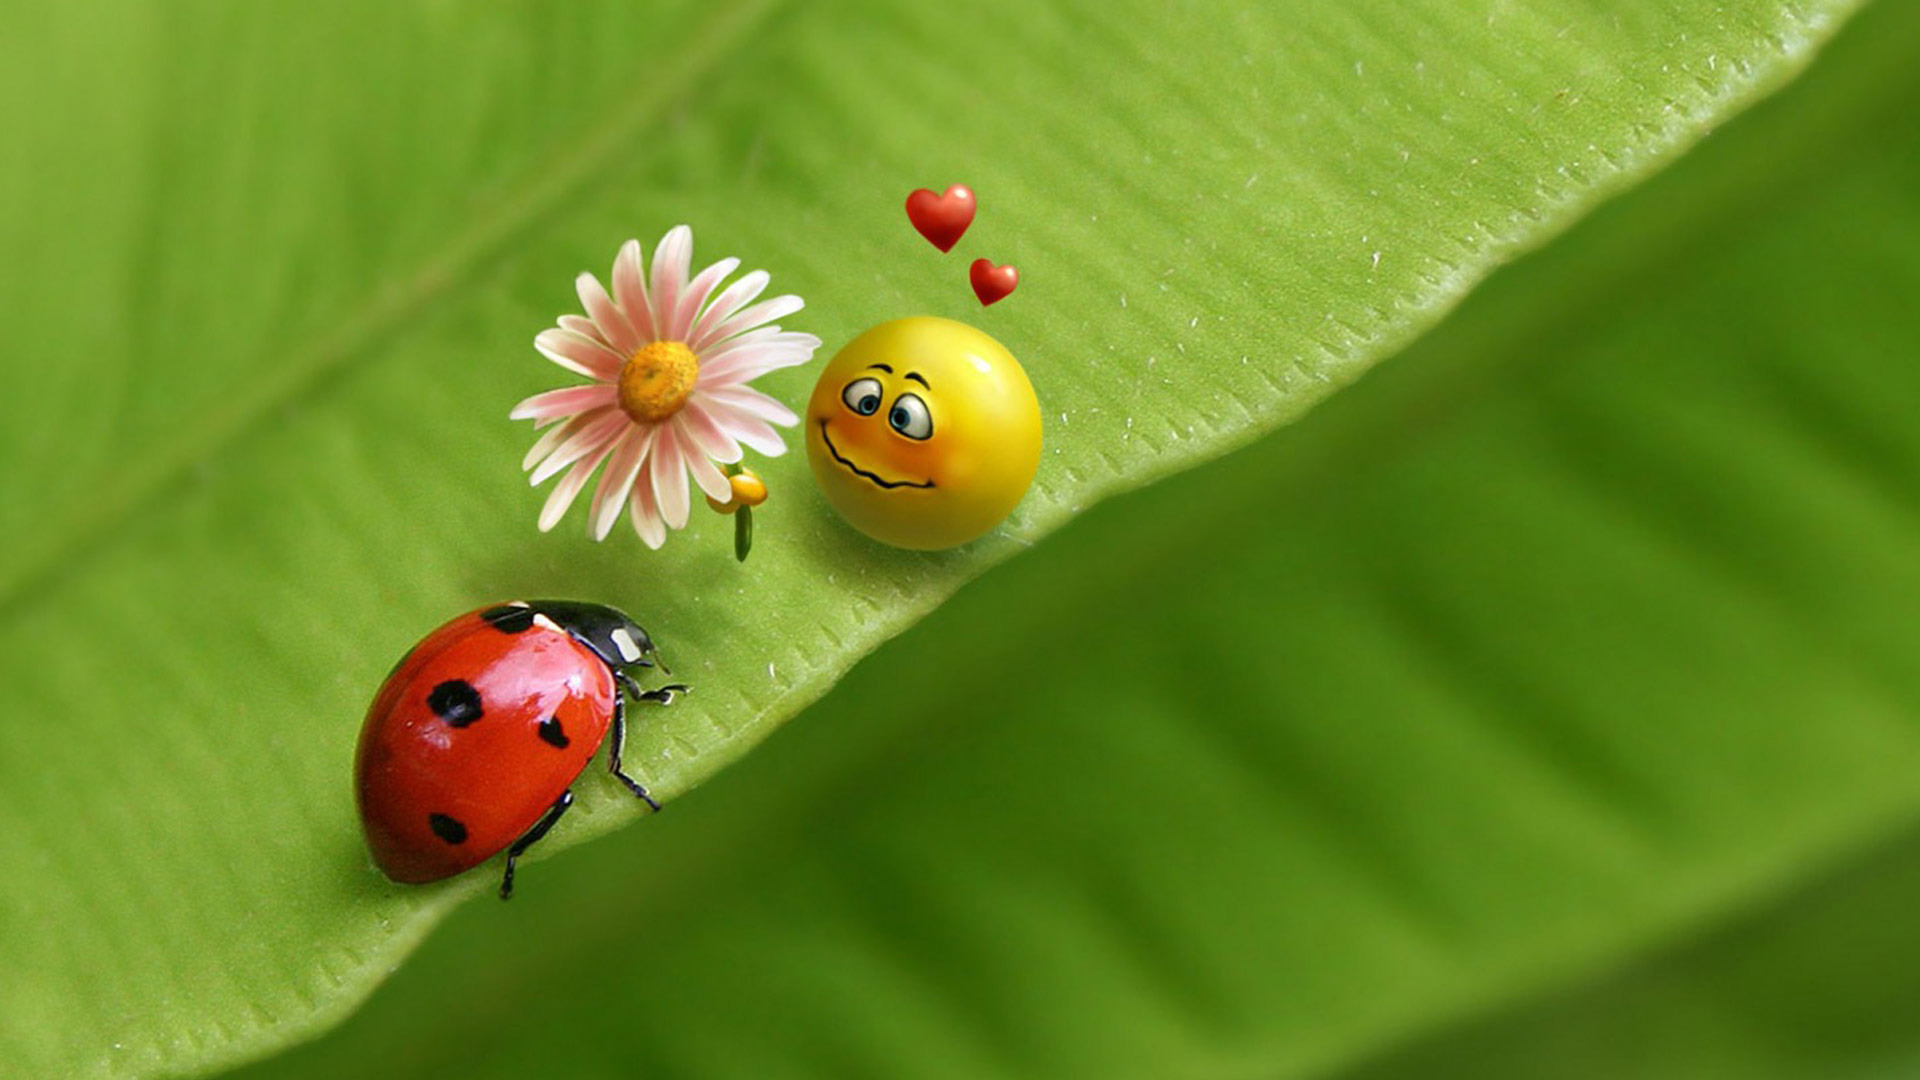 Ladybug and smiley face in love